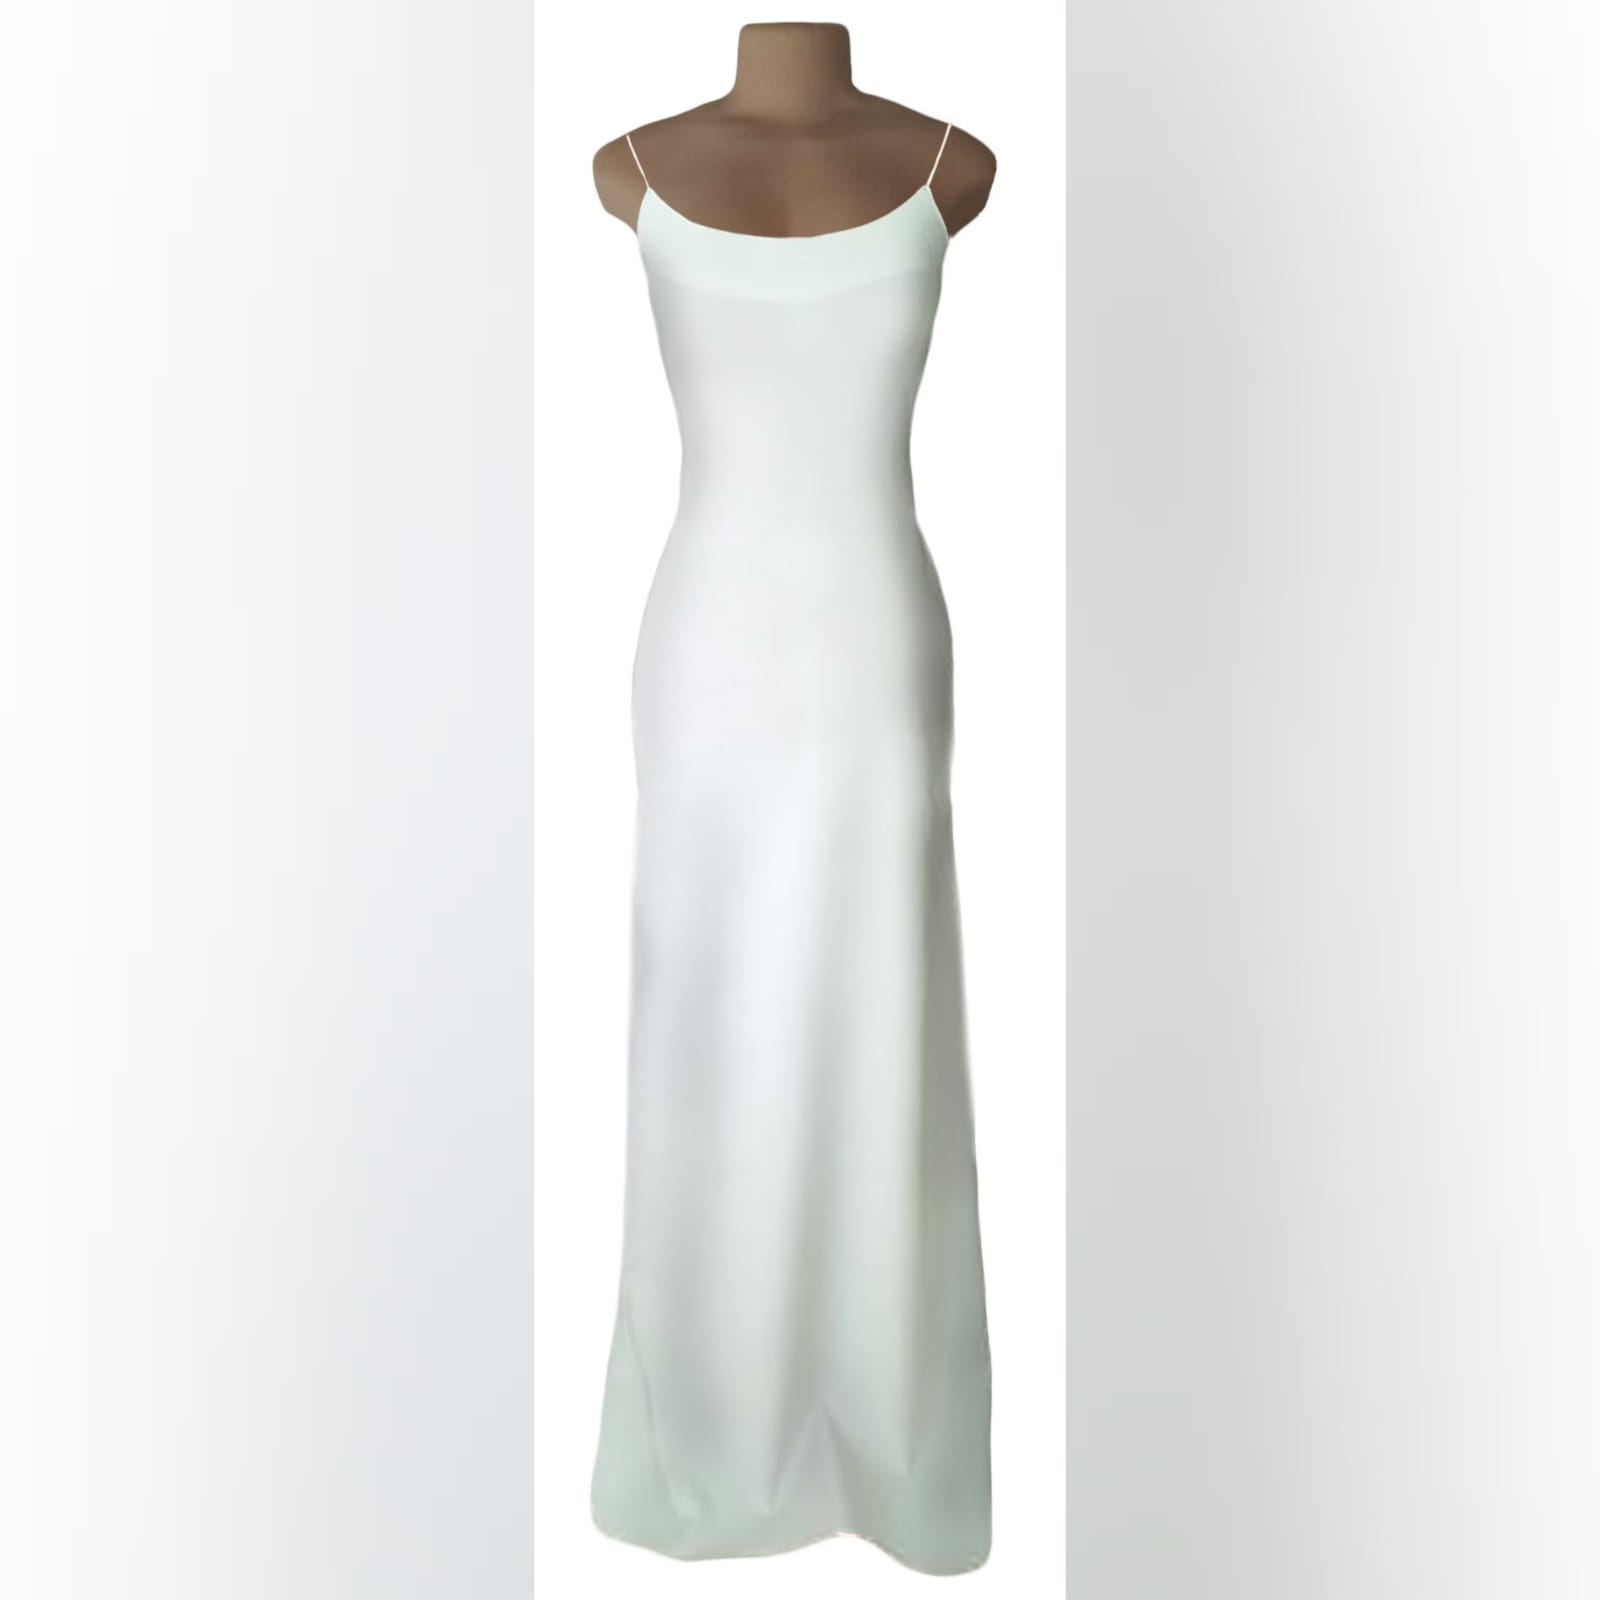 White long sexy evening dress 1 white long sexy evening dress with a low open back detailed with straps